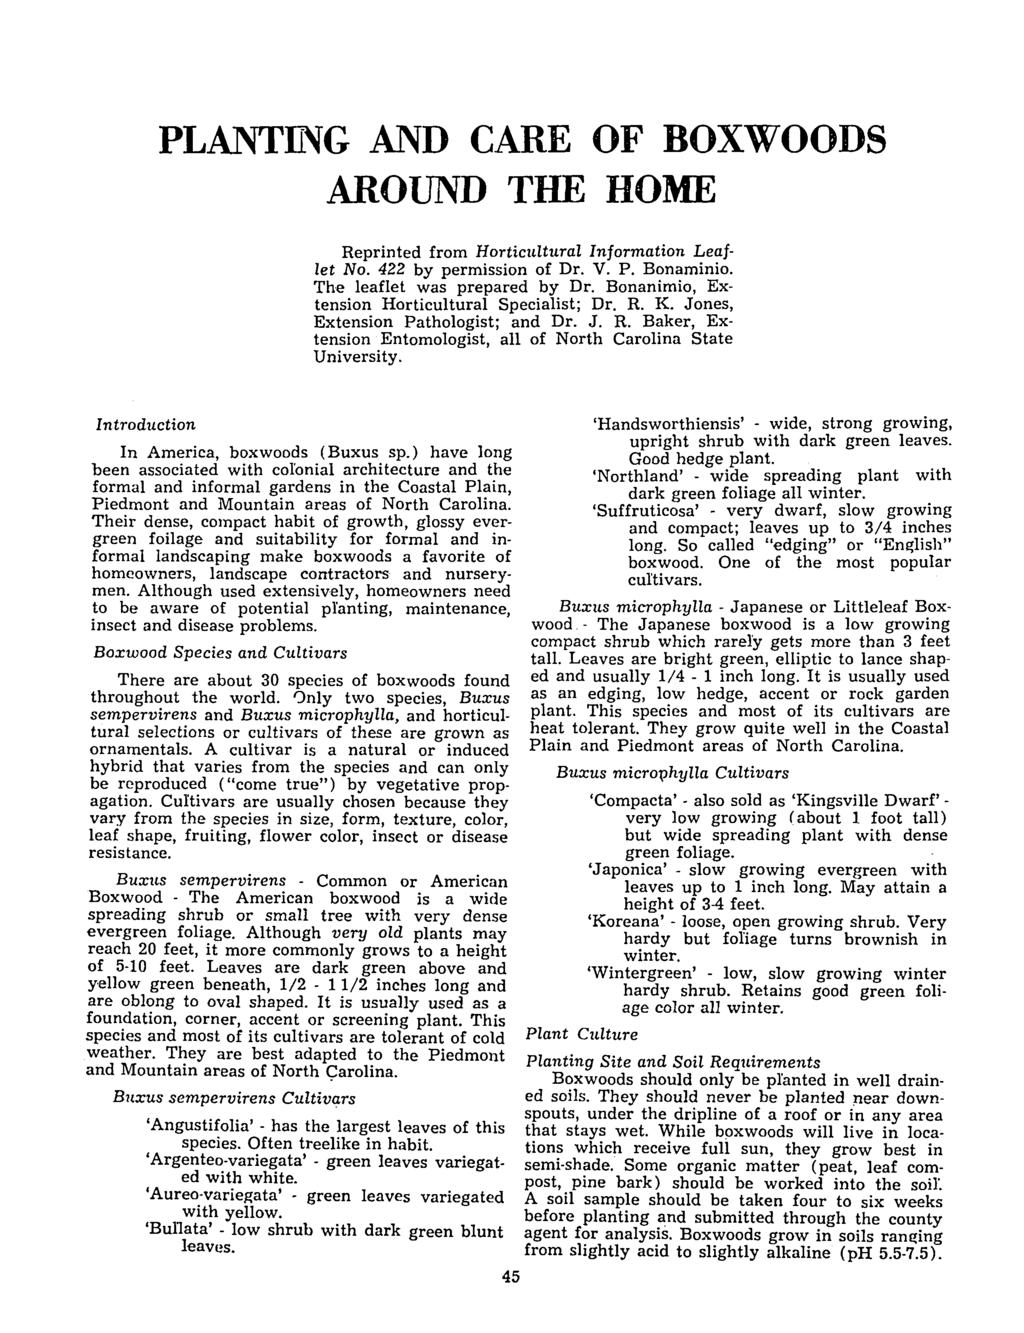 PLANTING AND CARE OF BOXWOODS AROUND THE HOME Reprinted from Horticultural Information ~e~flet No. 422 by permission of Dr. V. P. BonammlO. The leaflet was prepared by Dr.